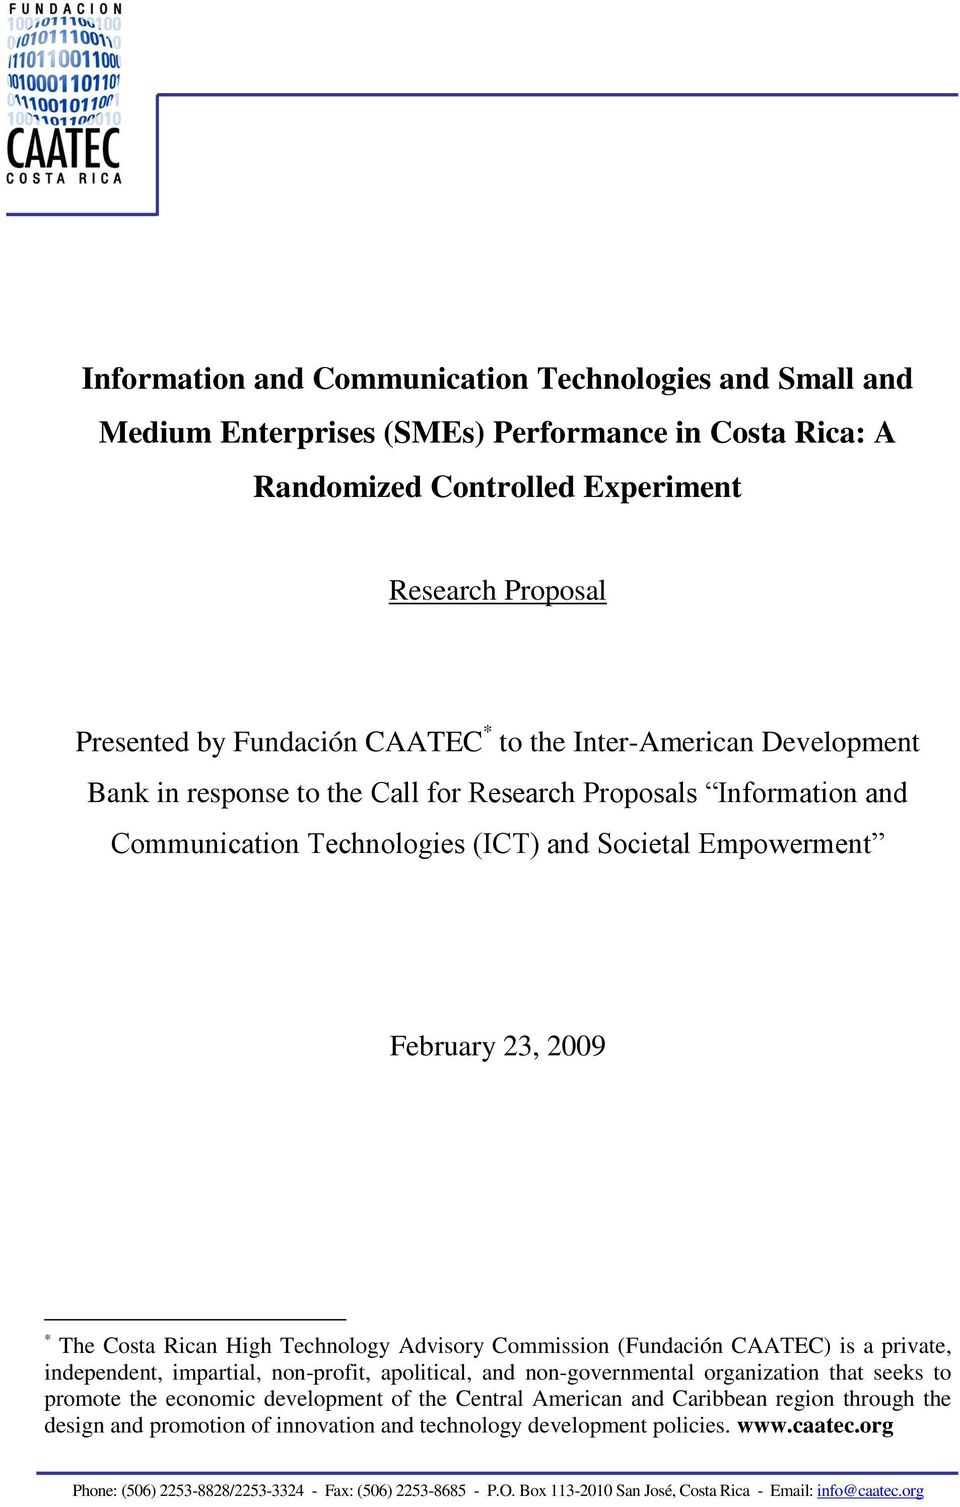 February 23, 2009 * The Costa Rican High Technology Advisory Commission (Fundación CAATEC) is a private, independent, impartial, non-profit, apolitical, and non-governmental